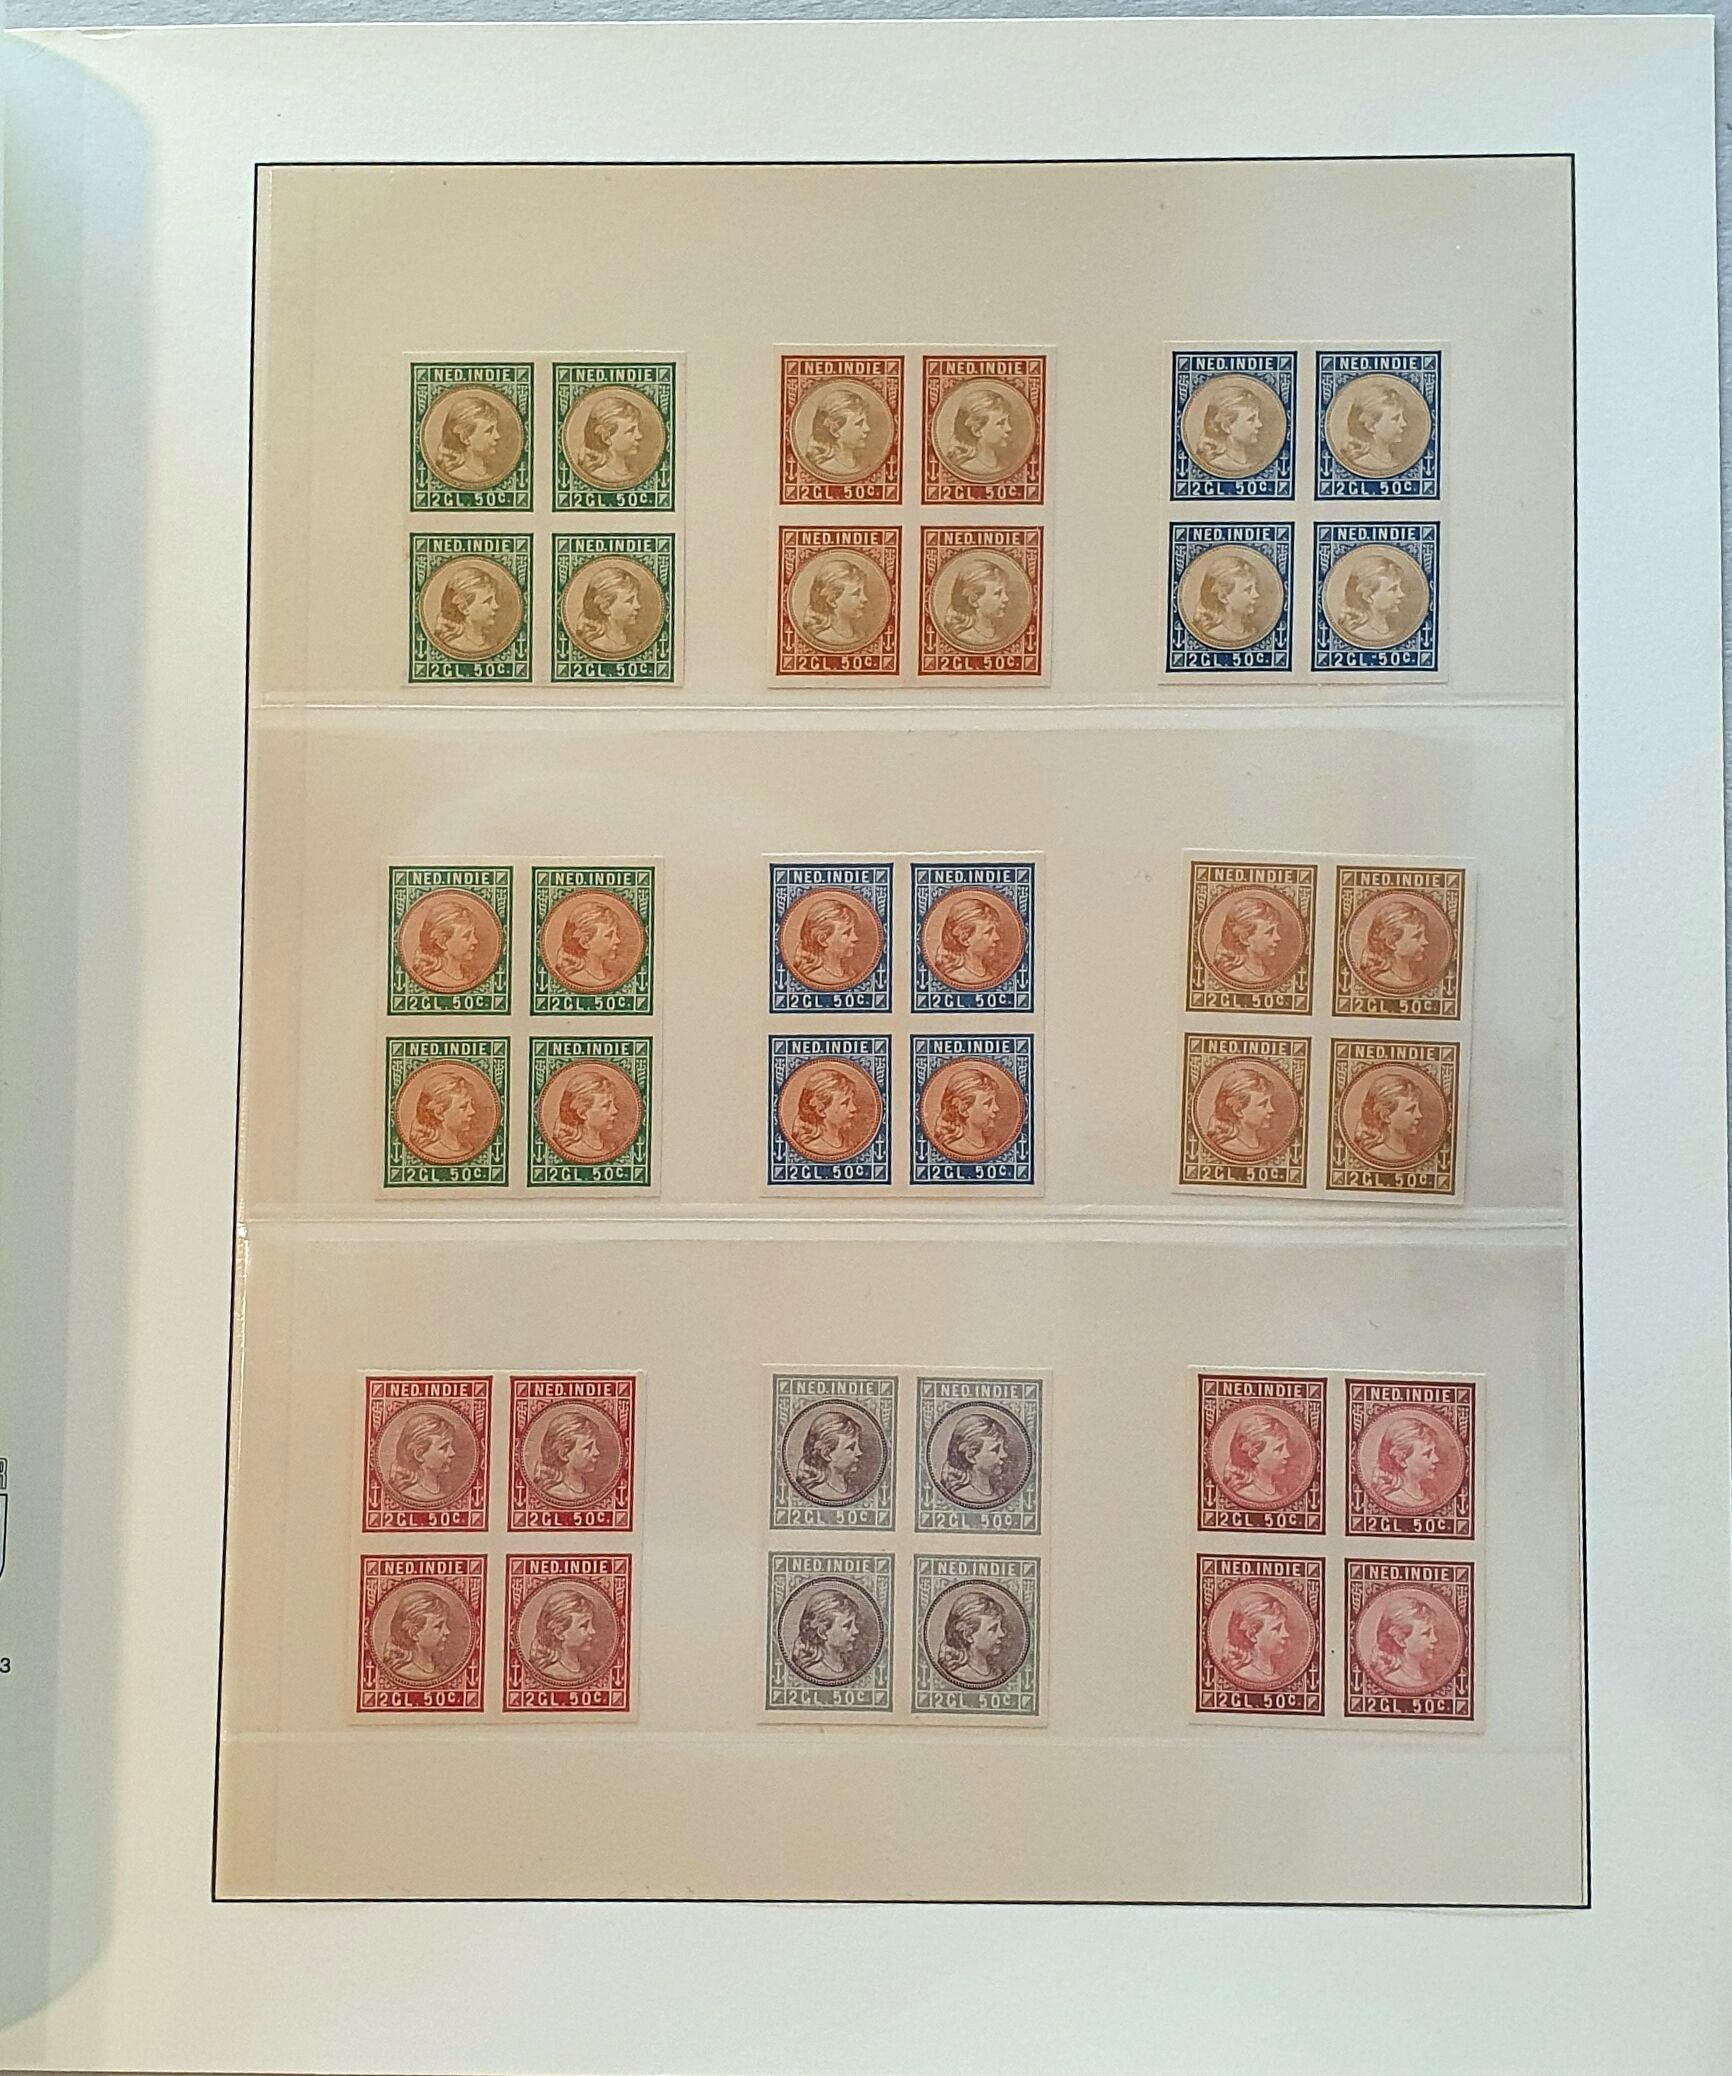 Lot 3310 - Netherlands and former colonies Netherlands Indies -  Corinphila Veilingen Auction 250-253 - Day 4 - Proofs of Netherlands former colonies